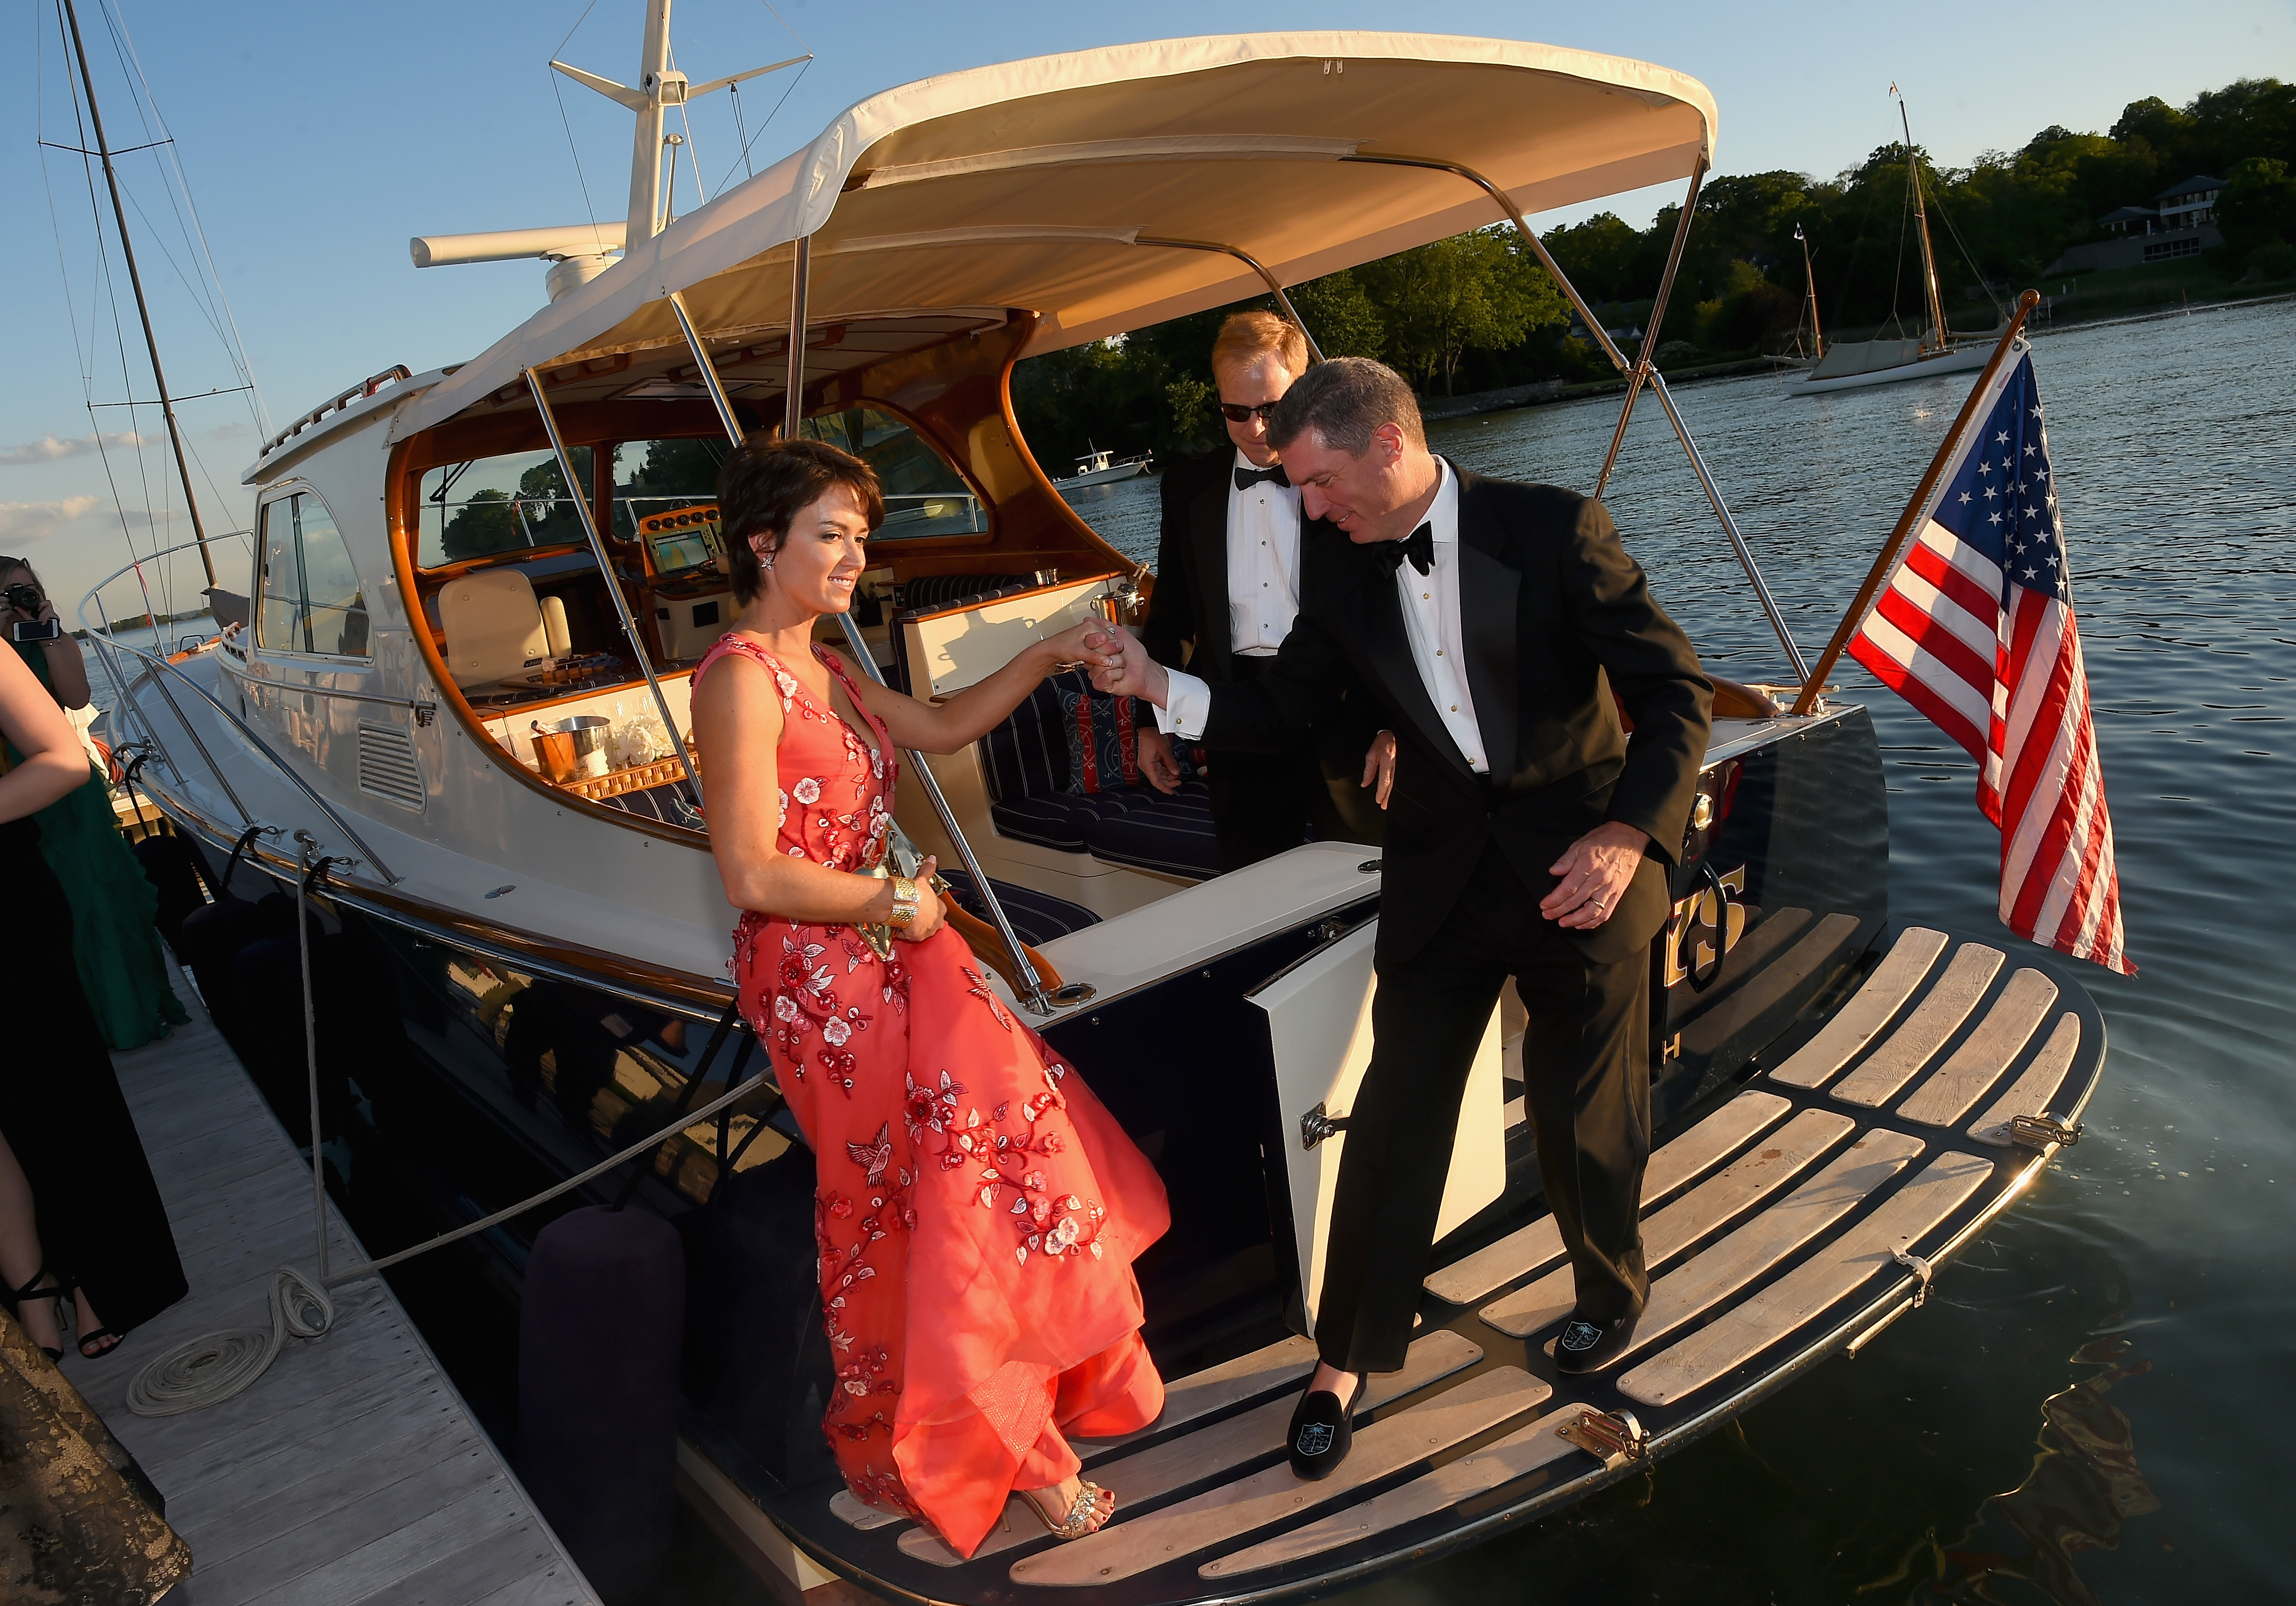 GREENWICH, CT - JUNE 01:  Greenwich International Film Festival Chairman of the Board, Founder, Wedny Reyes attends the Changemaker Boat Ride during the Greenwich International Film Festival, Day 1 on June 1, 2017 in Greenwich, Connecticut.  (Photo by Ben Gabbe/Getty Images for Greenwich International Film Festival)